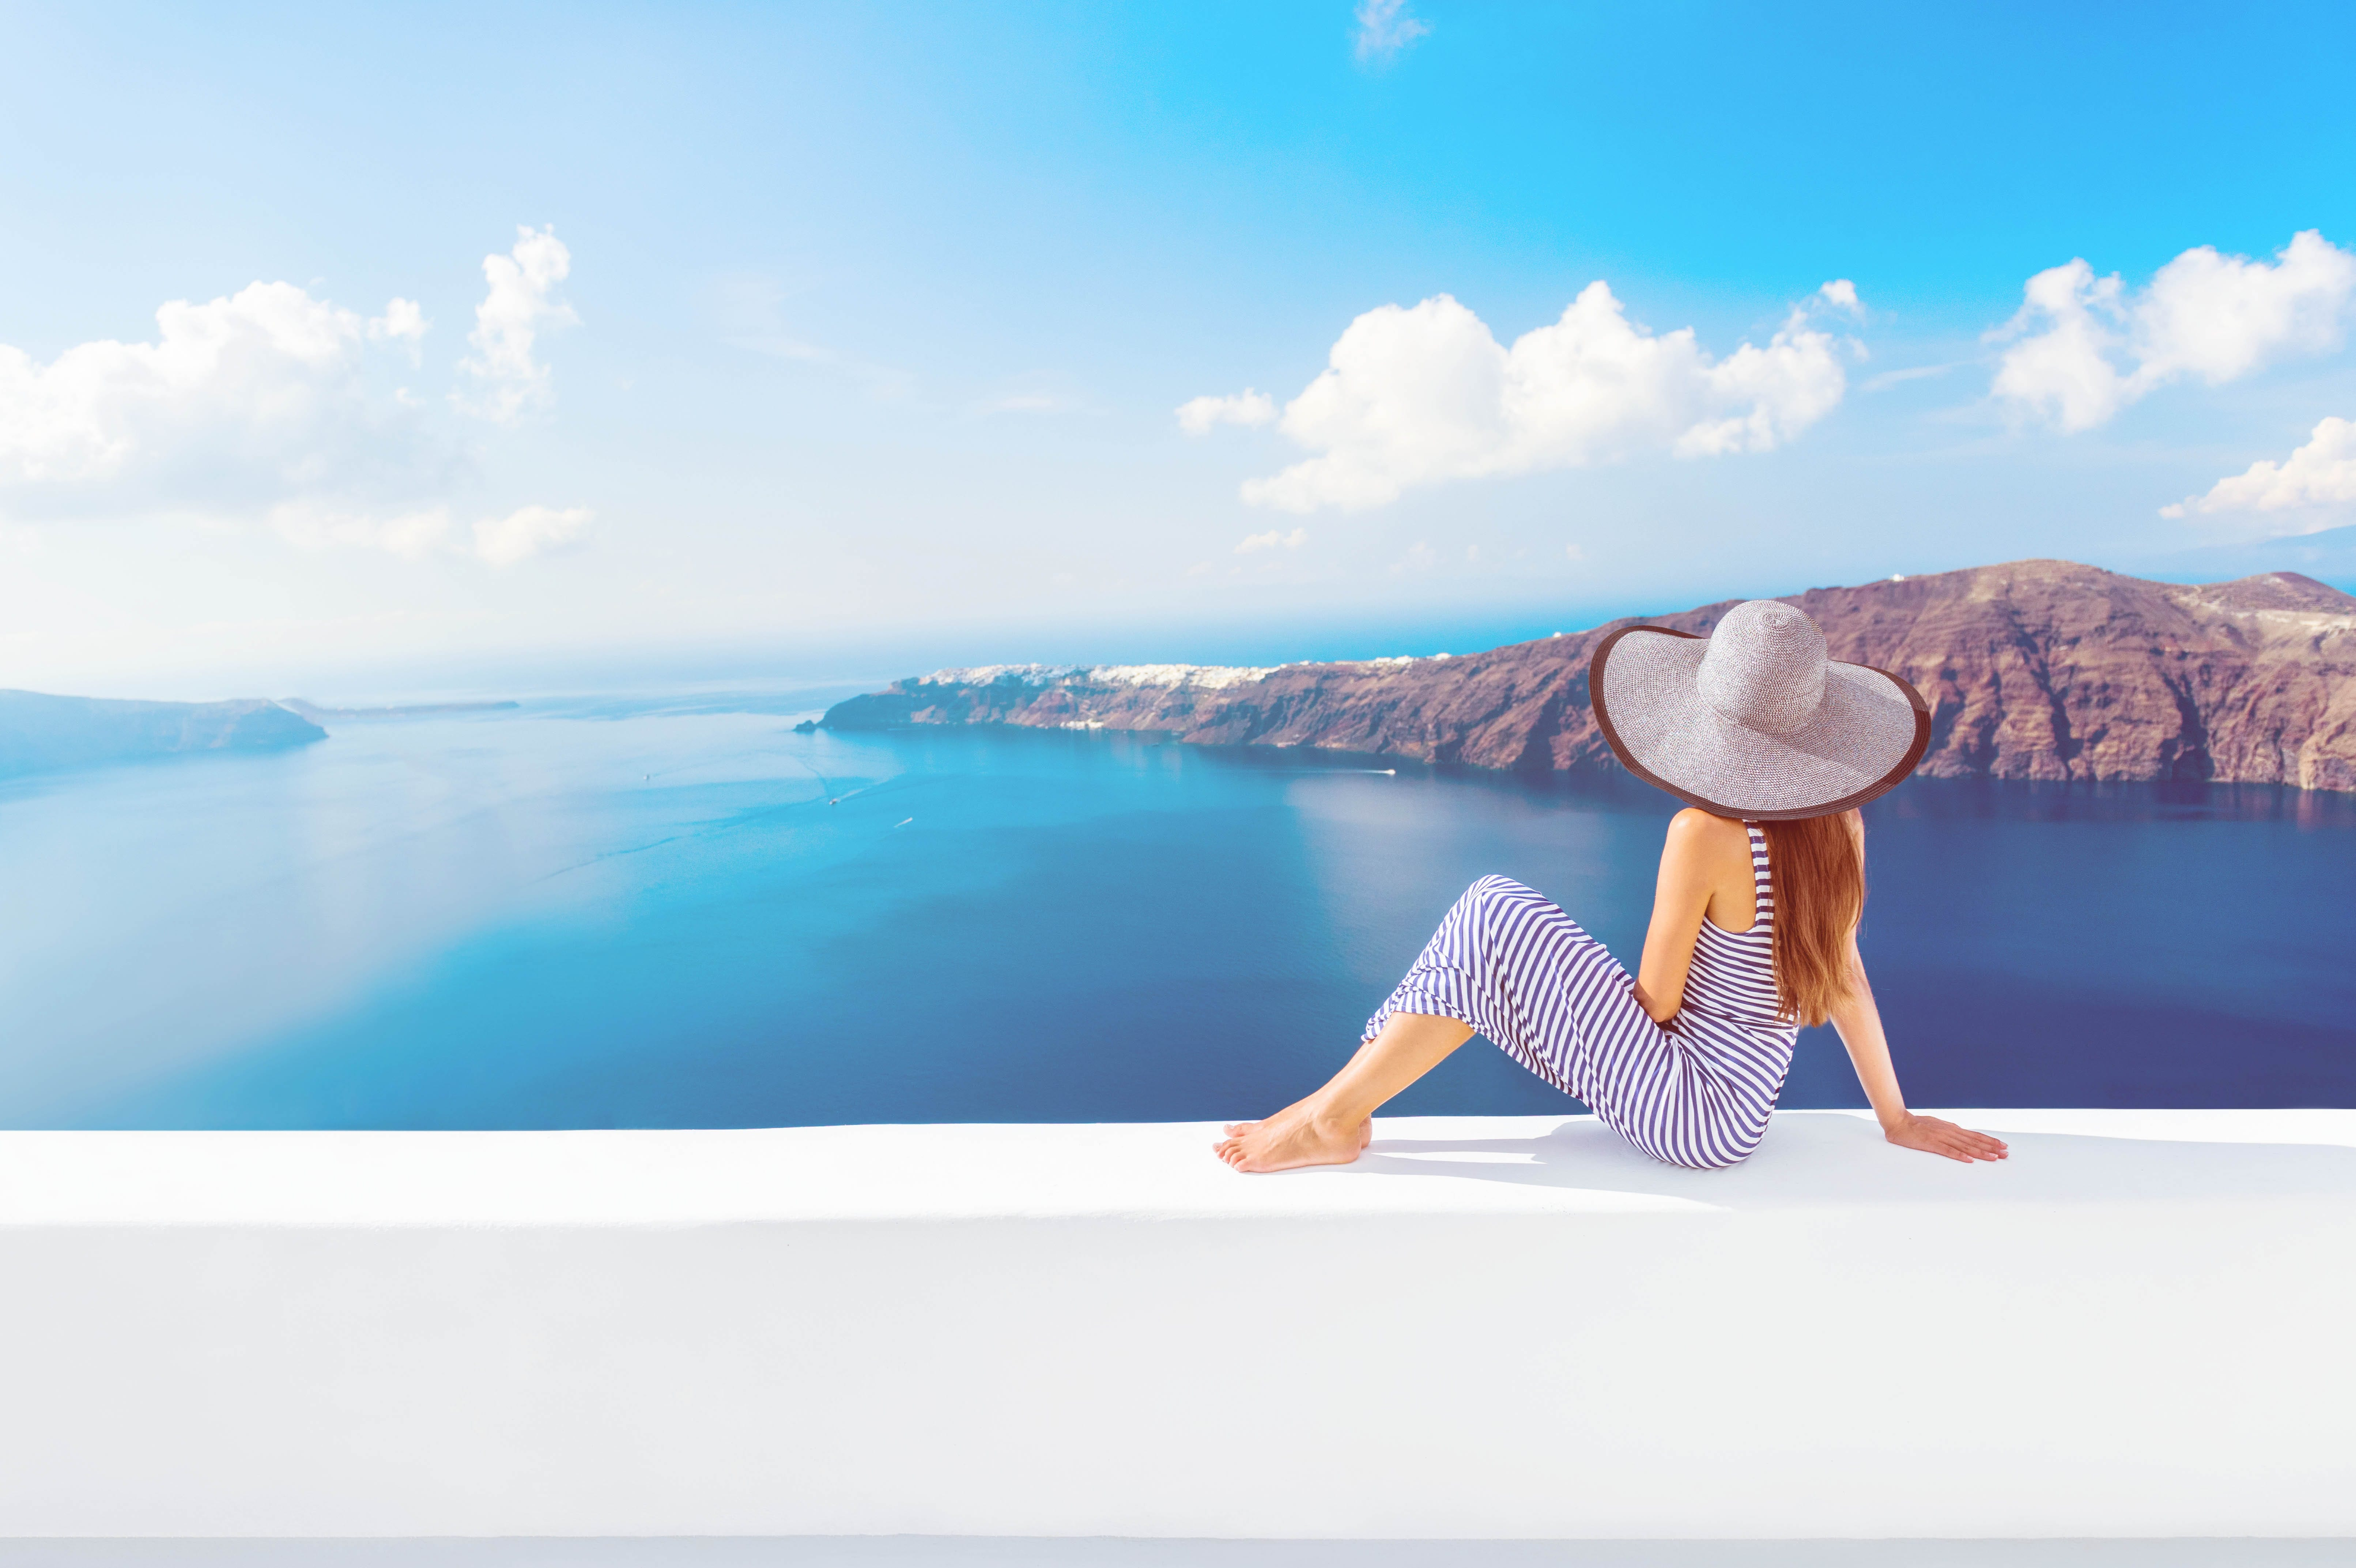 Woman Looking At View At Luxurious Travel Destination.